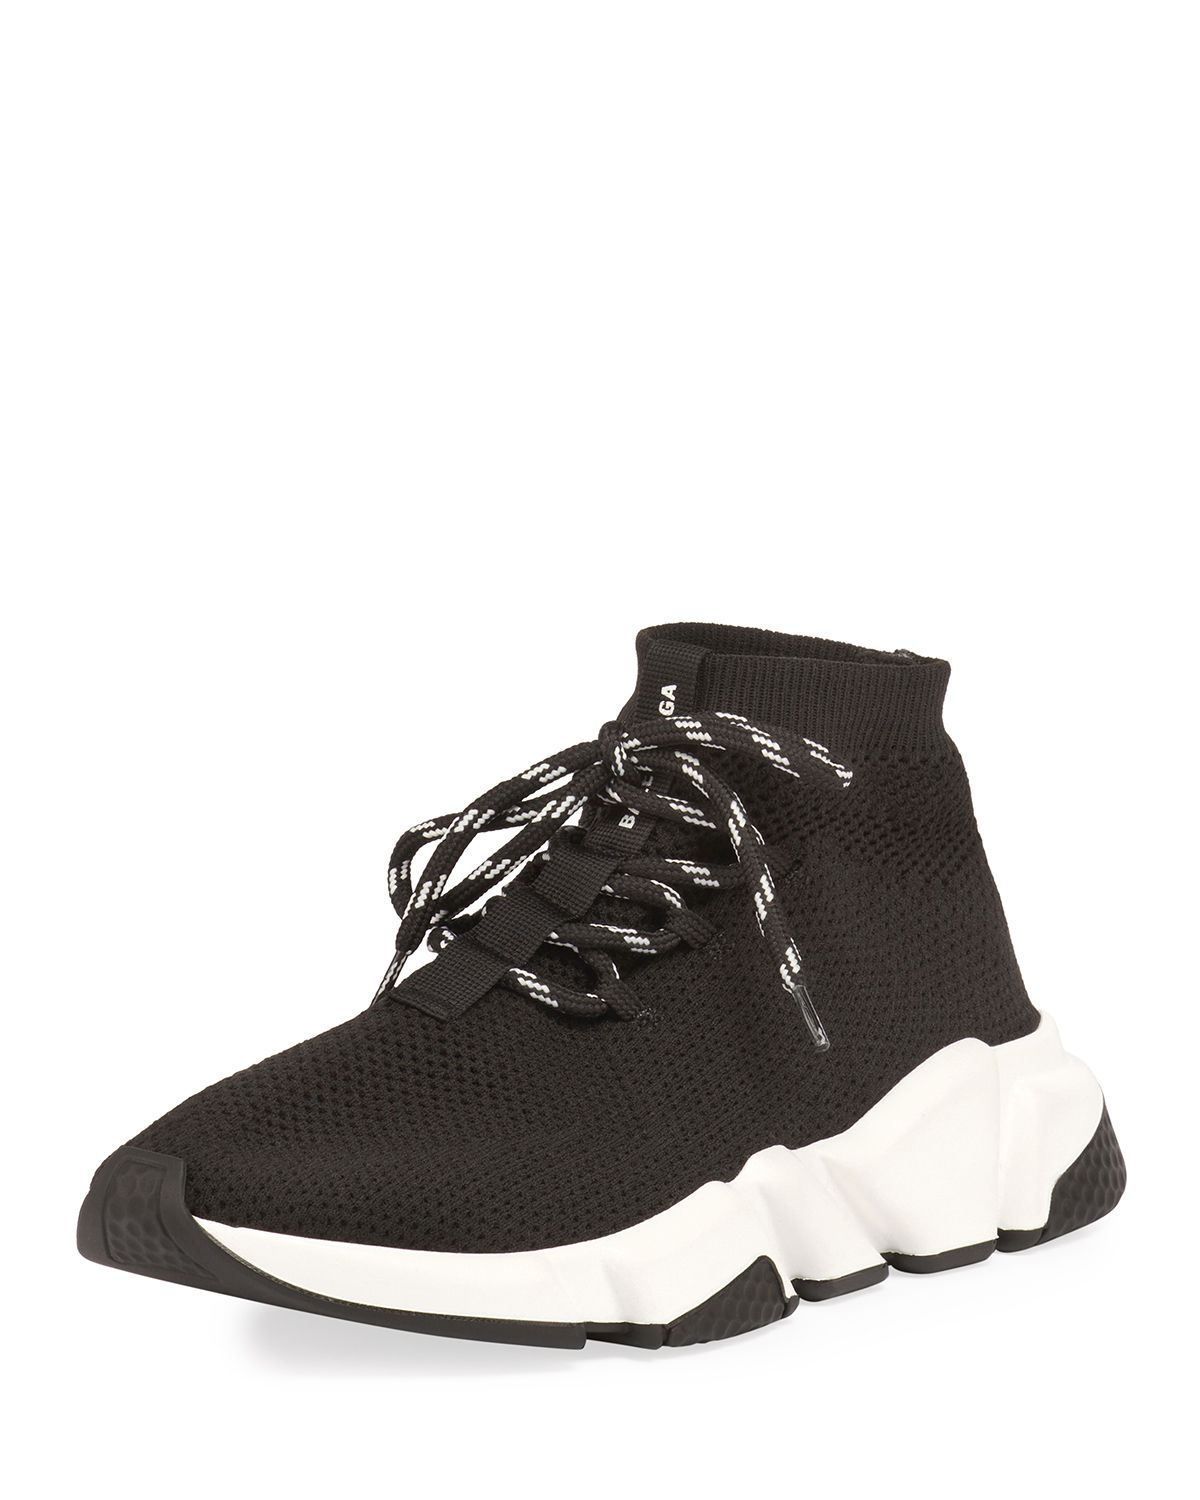 BalenciagaSpeed Lace-Up Knit Trainer.  750.00. Shoe   Handbag Event! 5086883f86c10